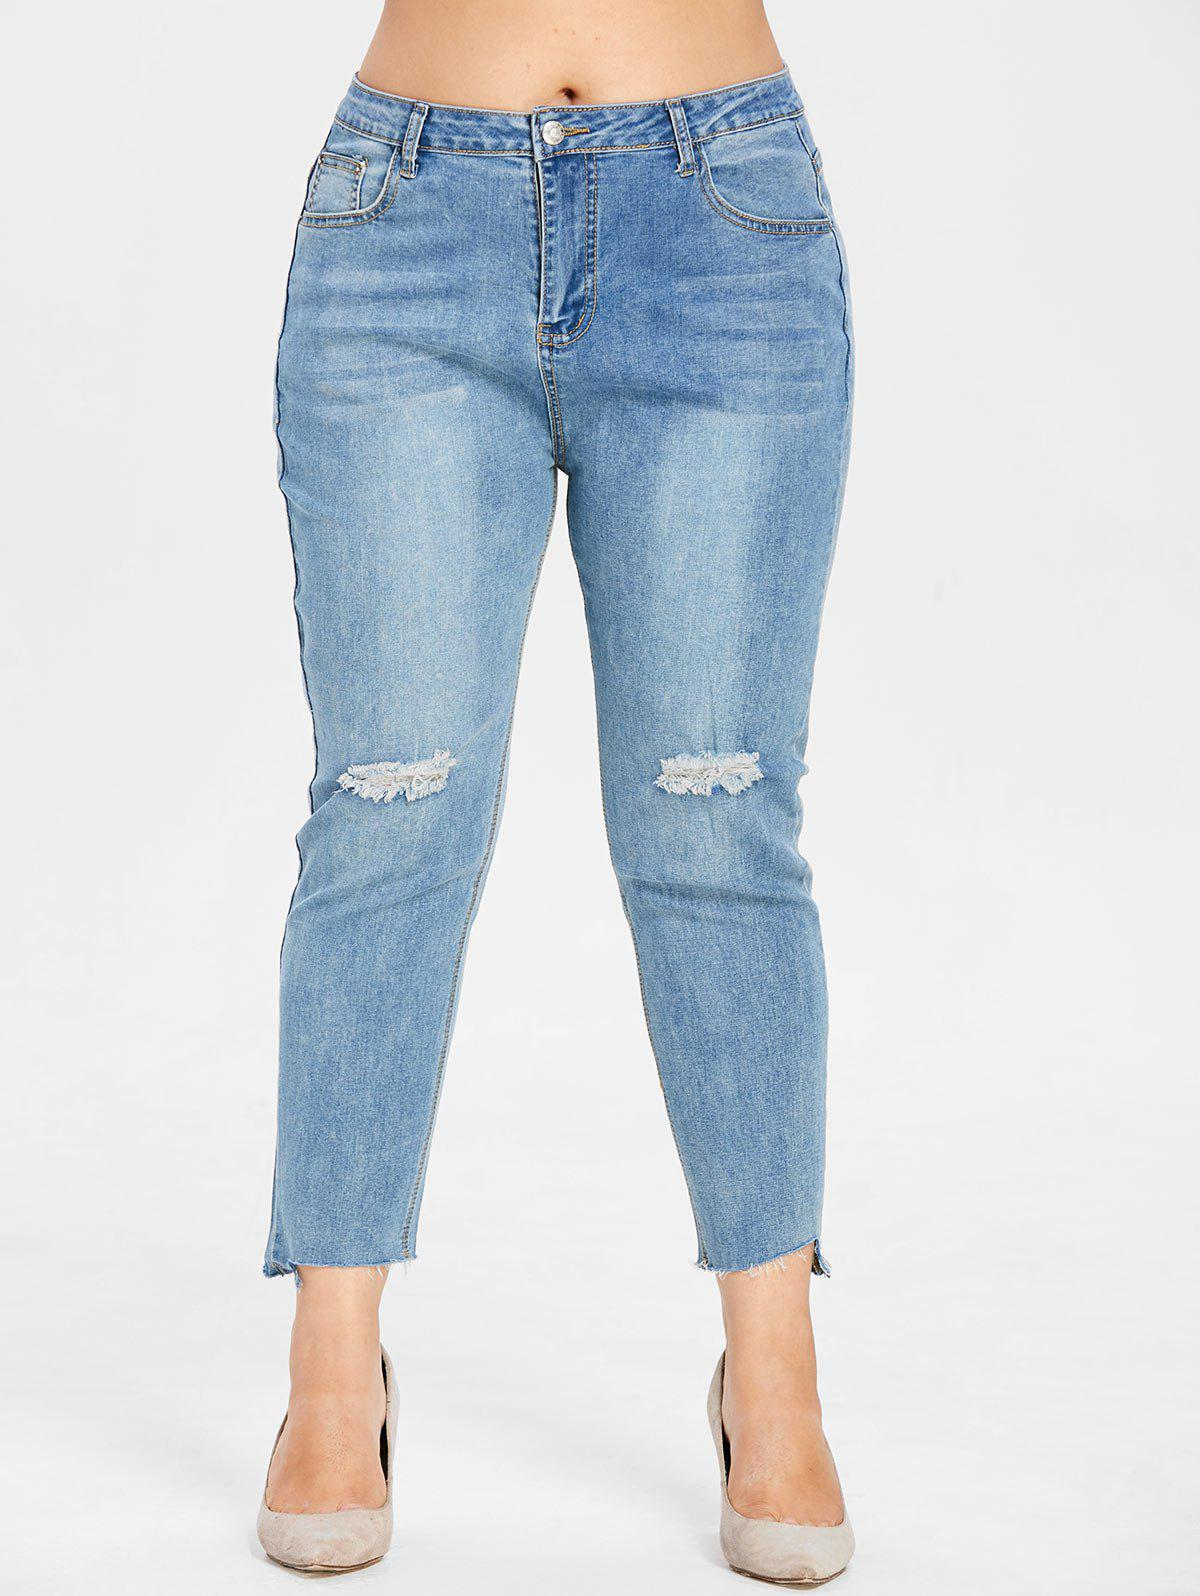 f1eabe46327b7 2019 Plus Size Distressed Detail Jeans